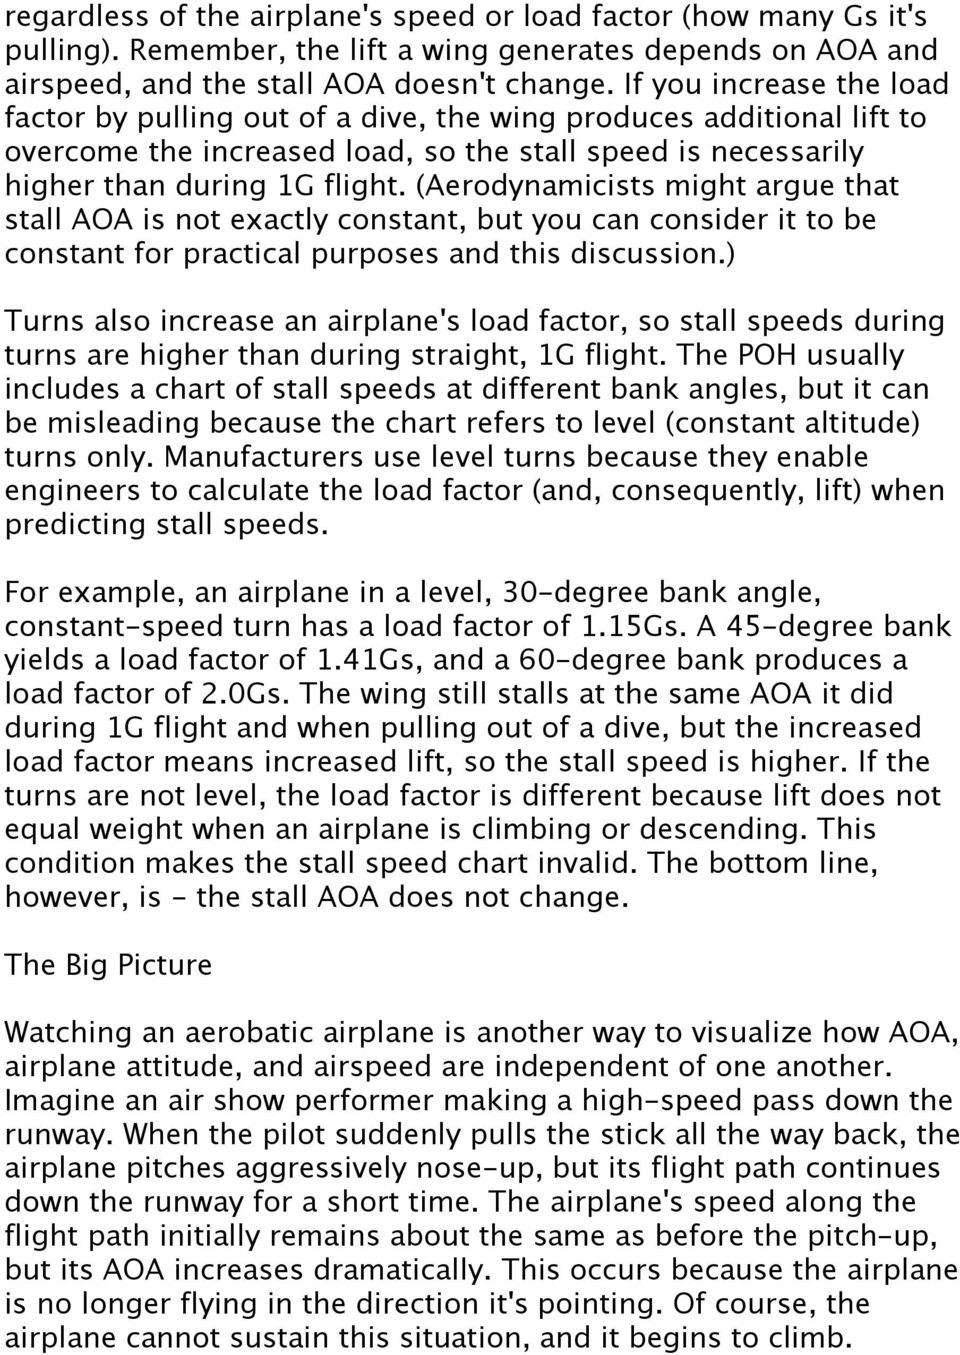 (Aerodynamicists might argue that stall AOA is not exactly constant, but you can consider it to be constant for practical purposes and this discussion.